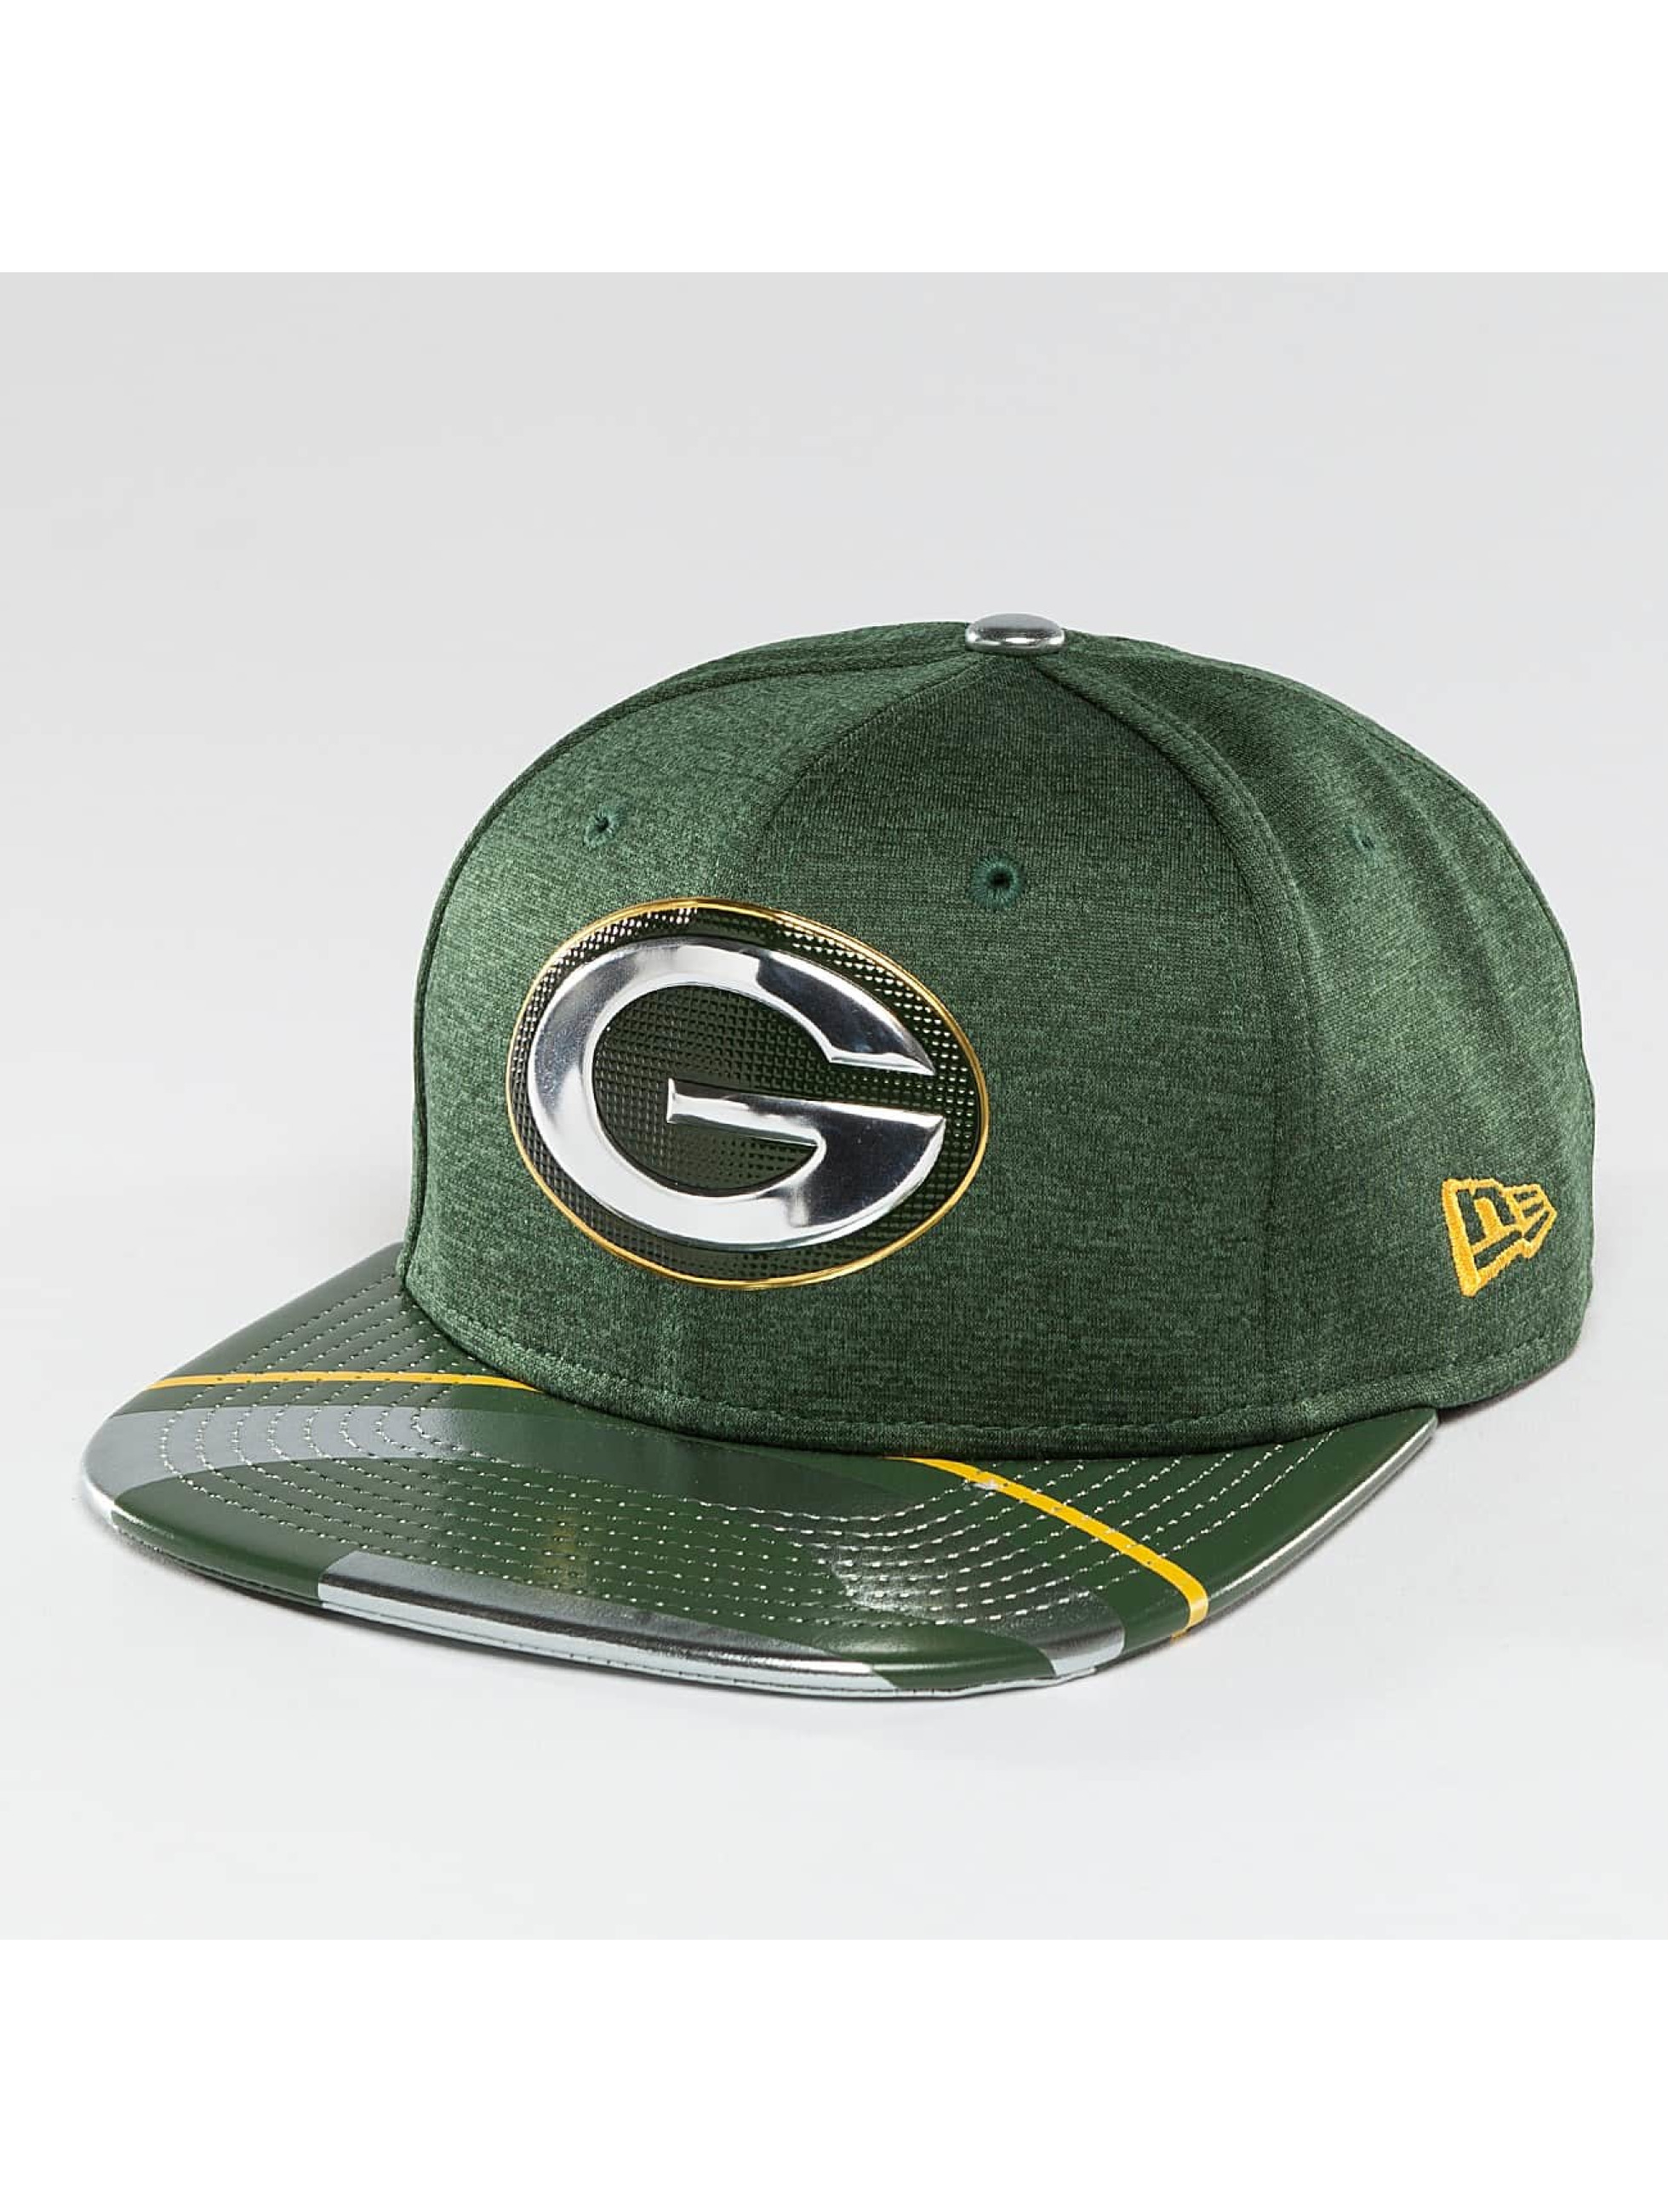 New Era Snapback Cap NFL Offical On Stage Green Bay Packers 9Fifty green